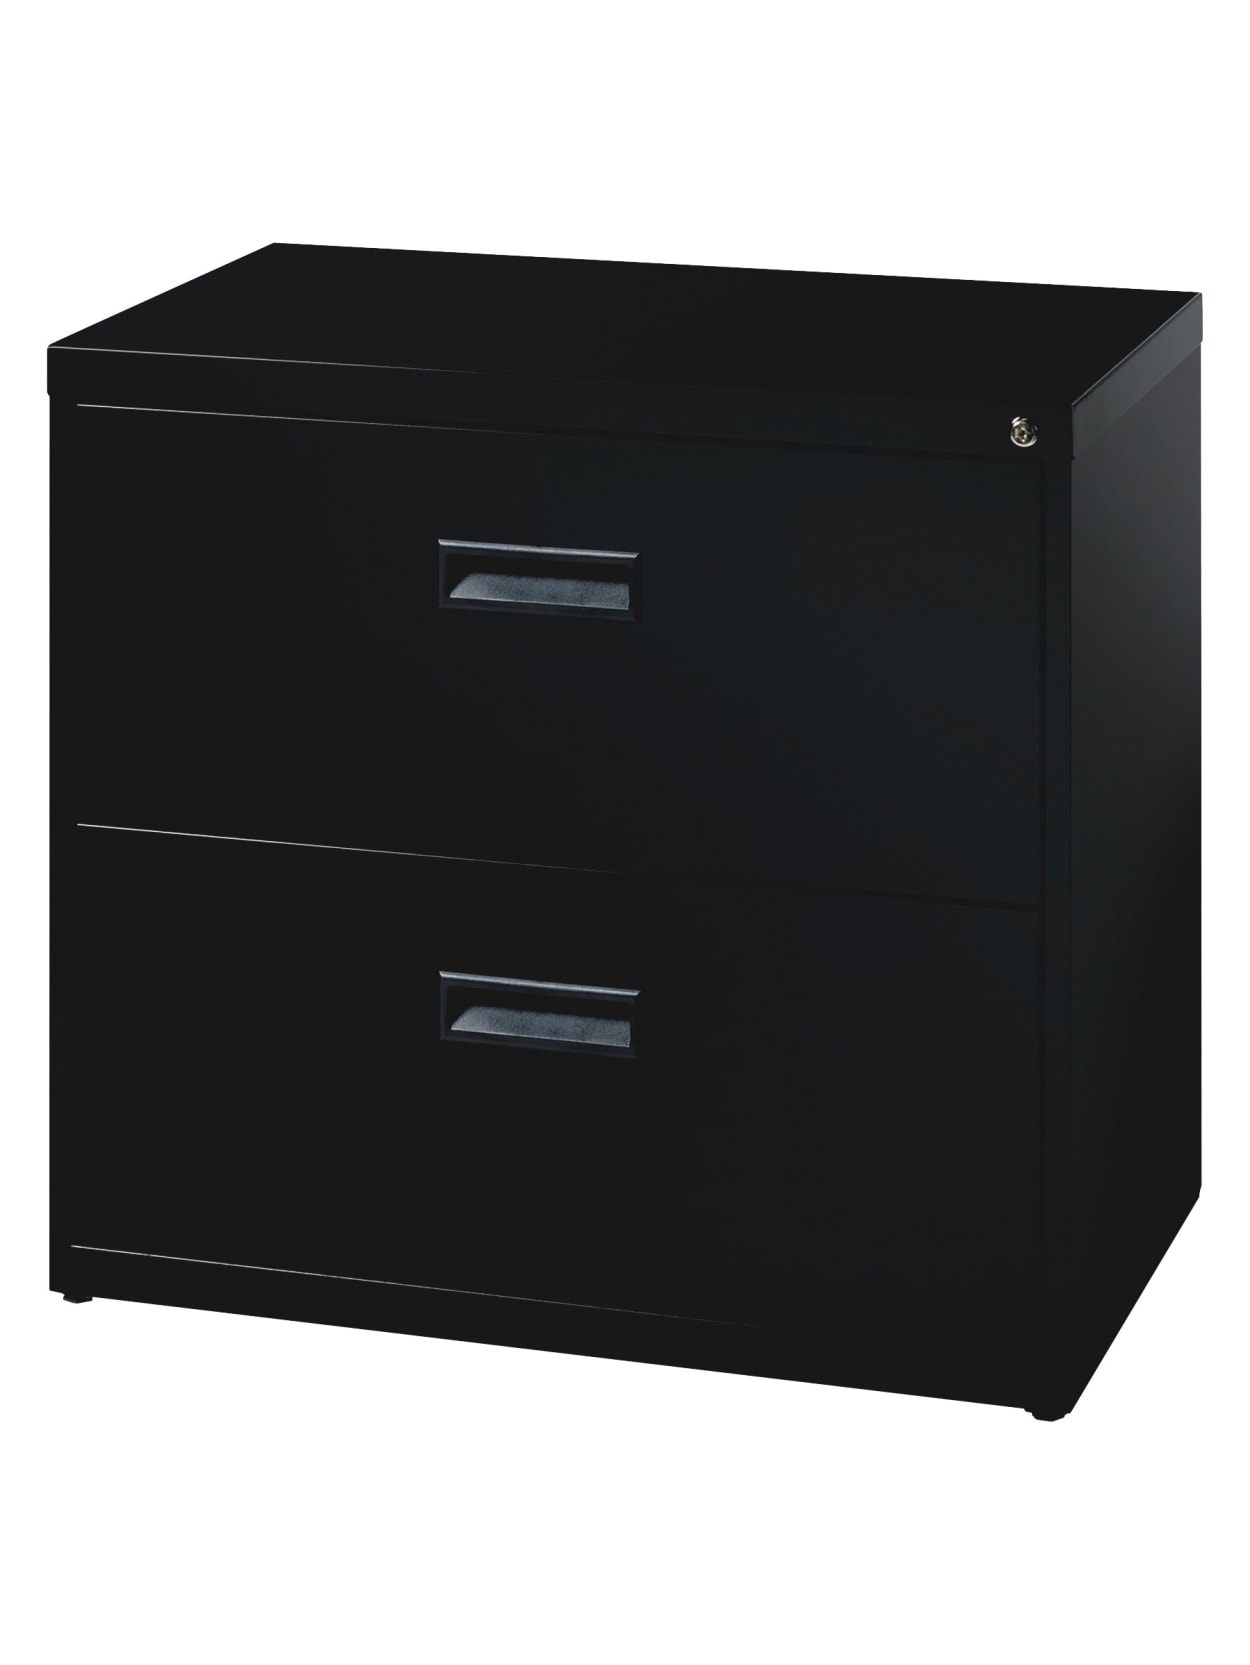 Picture of: Realspace Soho 2 Drawer Cabinet Black Office Depot